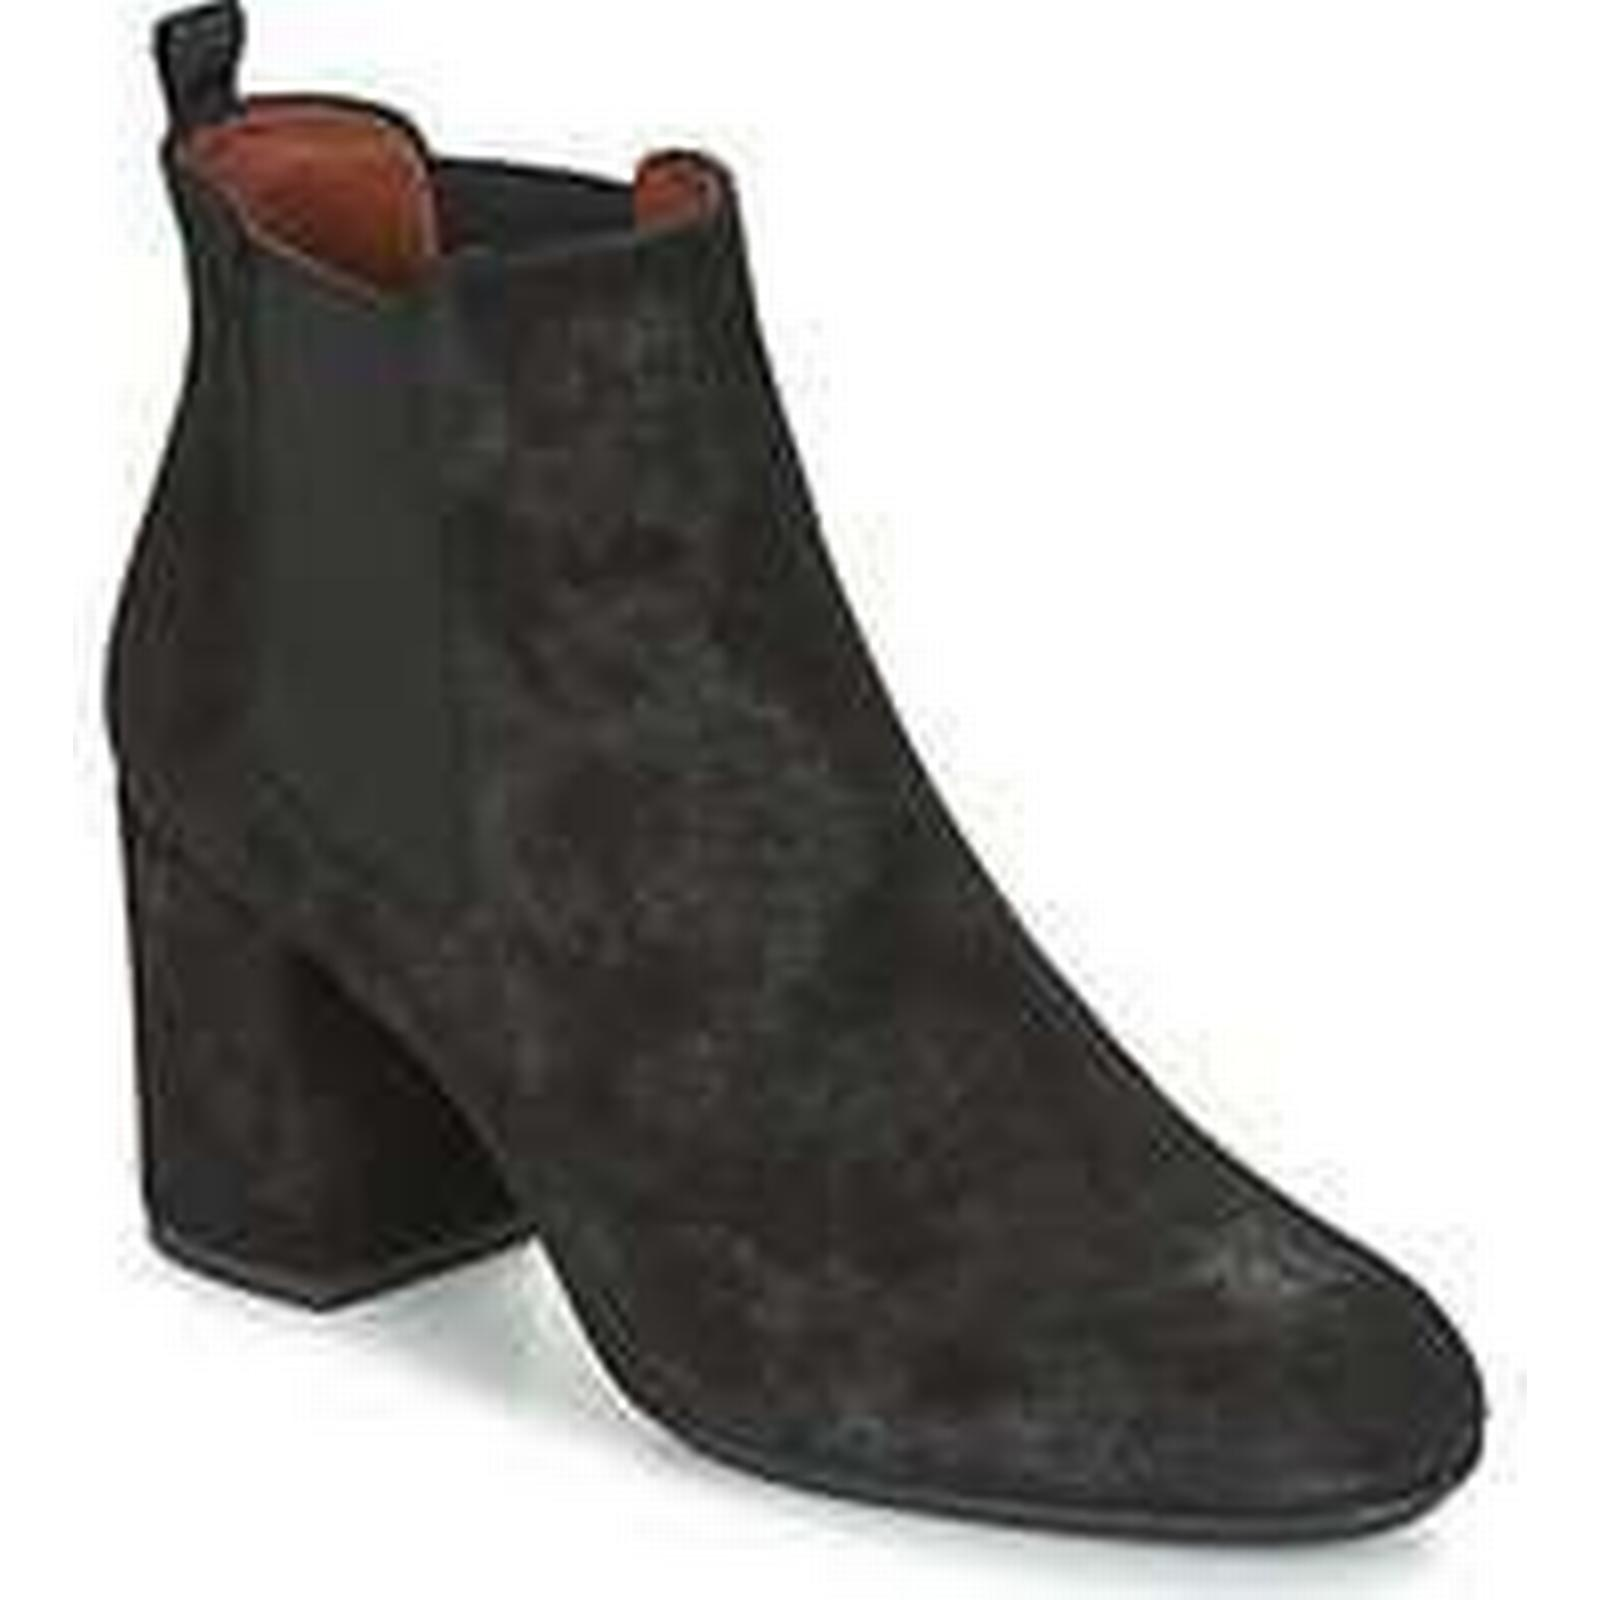 5a9e7f359 Spartoo.co.uk Hispanitas GENNA women s Low Ankle Boots in in in Black  df3622 ...